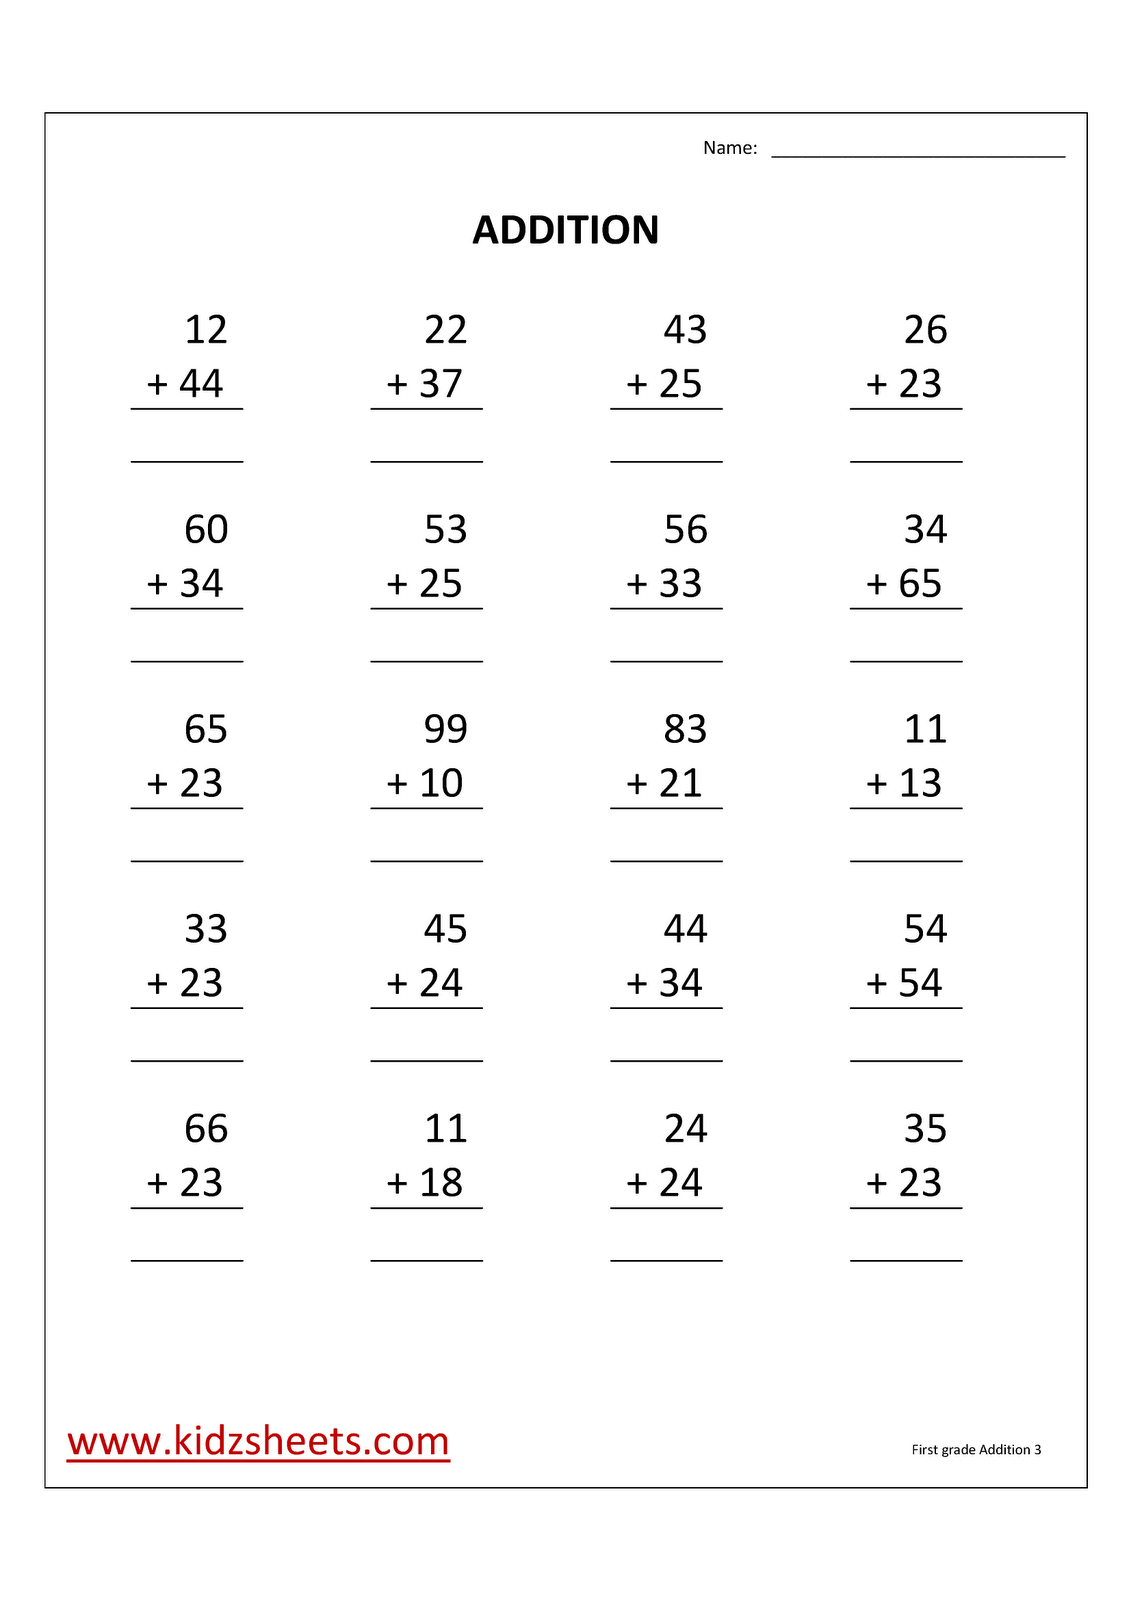 Kidz Worksheets First Grade Addition Worksheet3 – First Grade Addition Worksheets Free